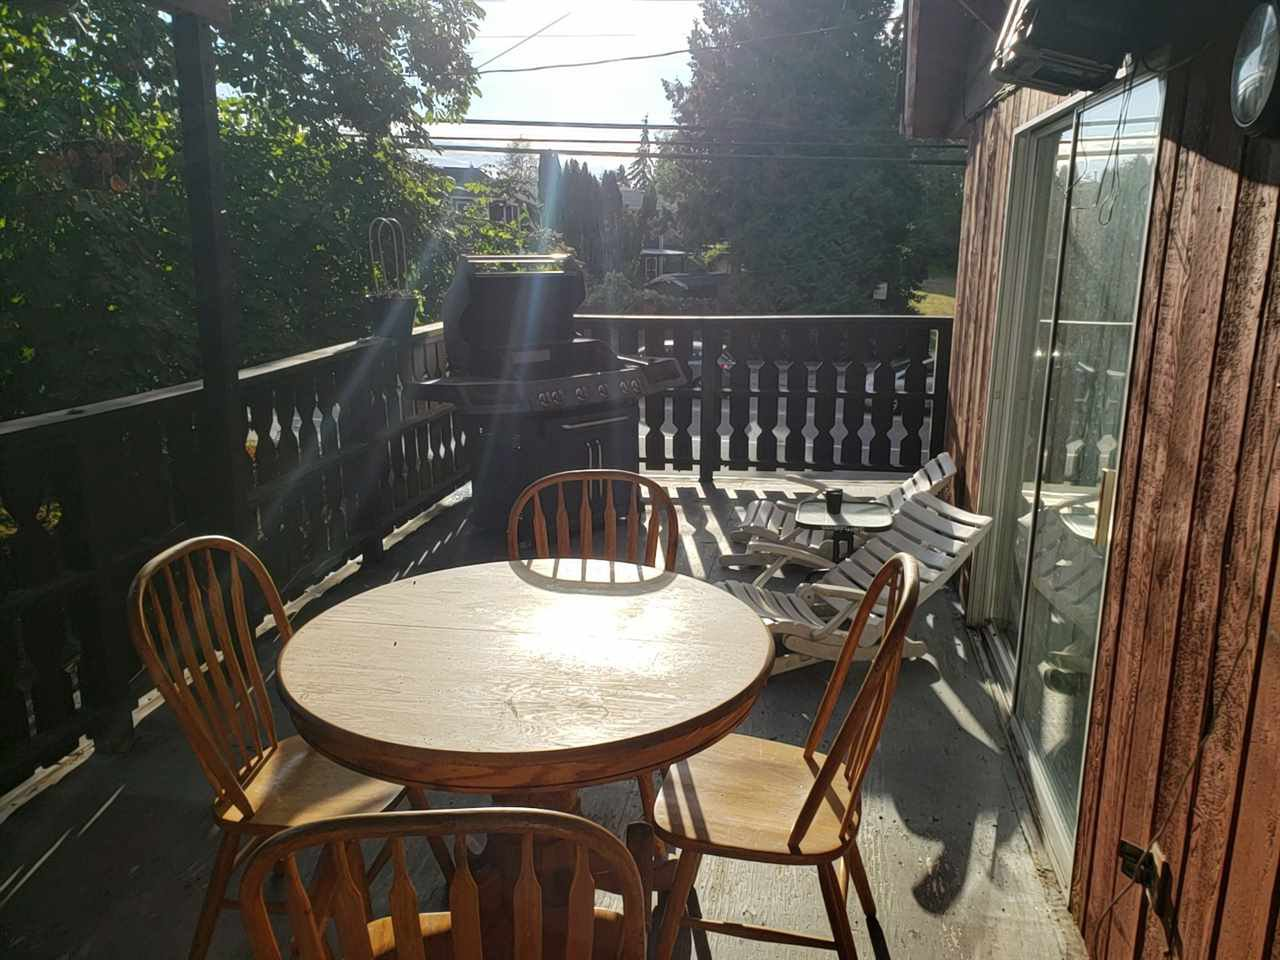 """Photo 5: Photos: 9716 - 9718 156 Street in Surrey: Guildford House Duplex for sale in """"GUILDFORD"""" (North Surrey)  : MLS®# R2306106"""